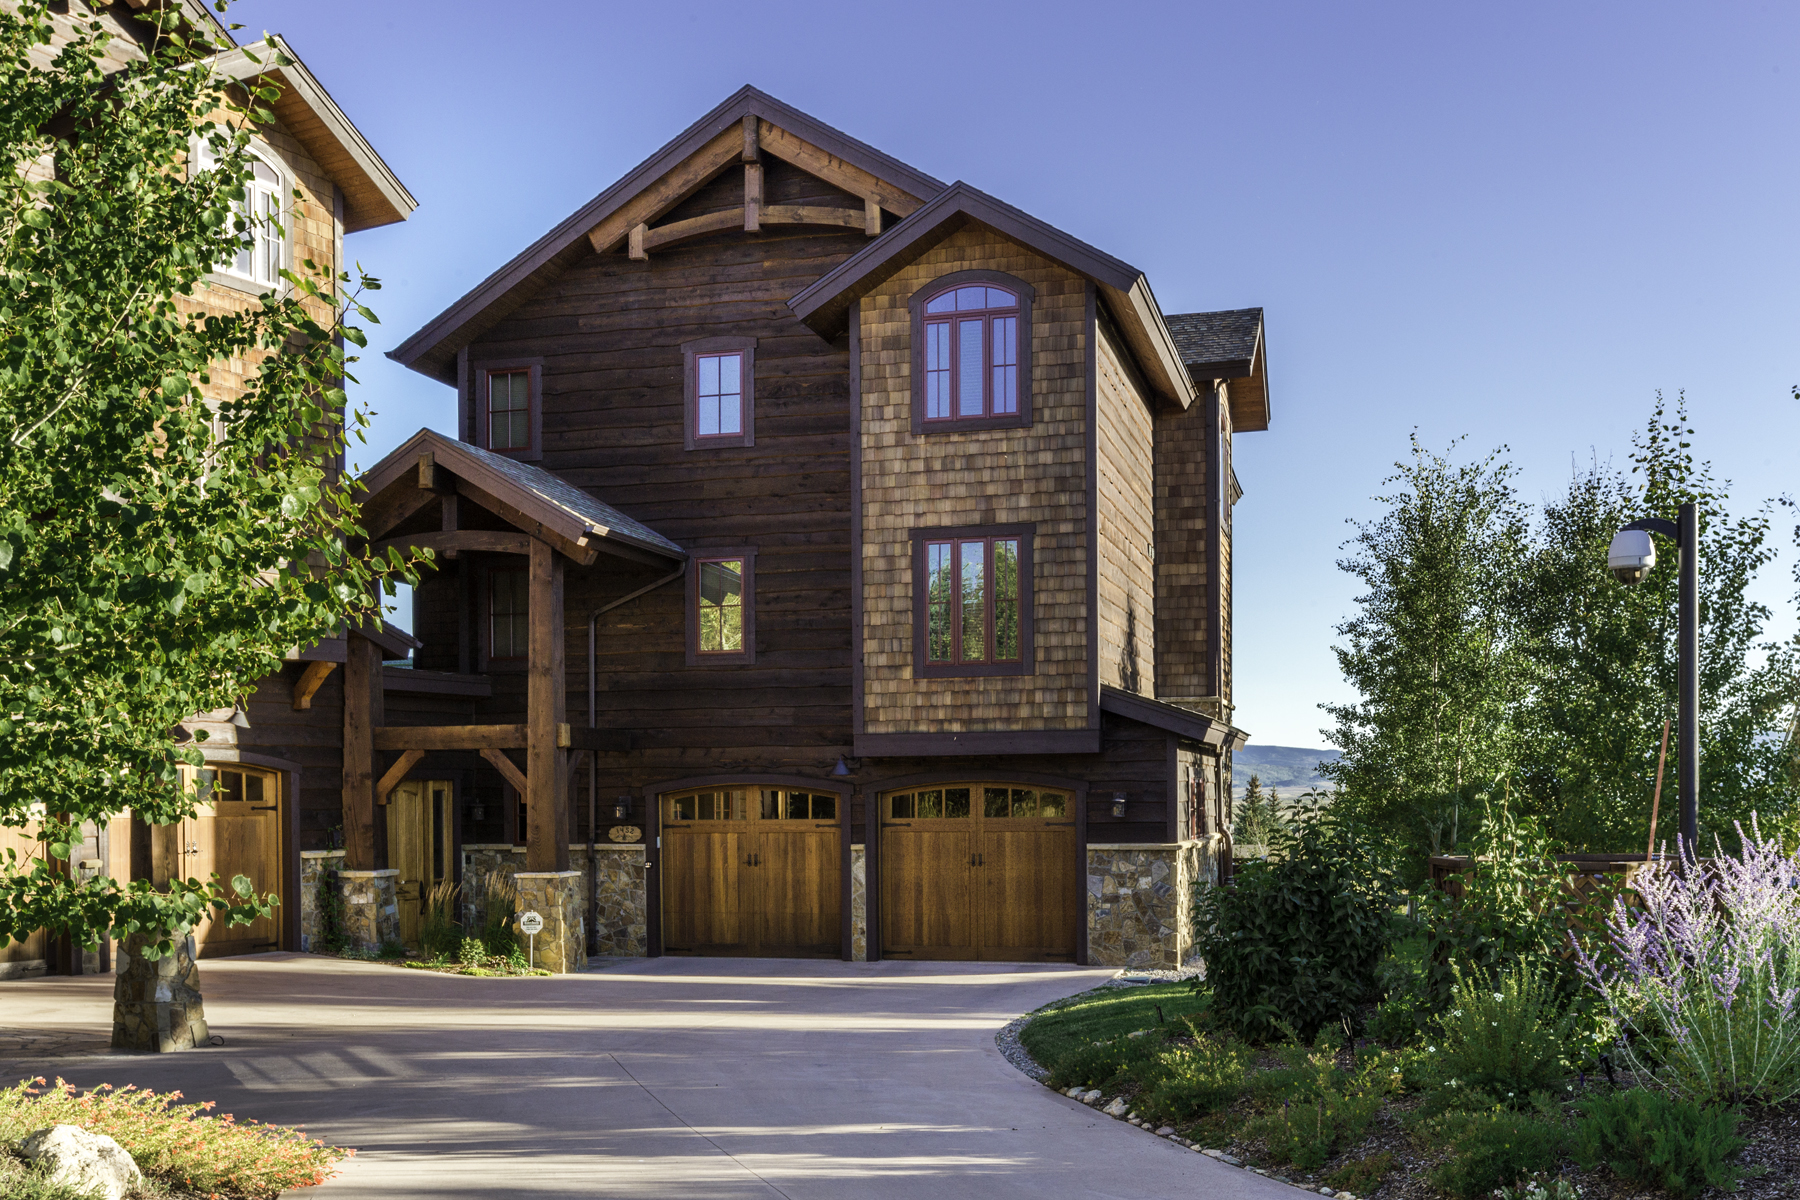 Stadthaus für Verkauf beim Luxury Ski Area Townhome with Stunning Views! 1452 Delta Queen Court Steamboat Springs, Colorado 80487 Vereinigte Staaten